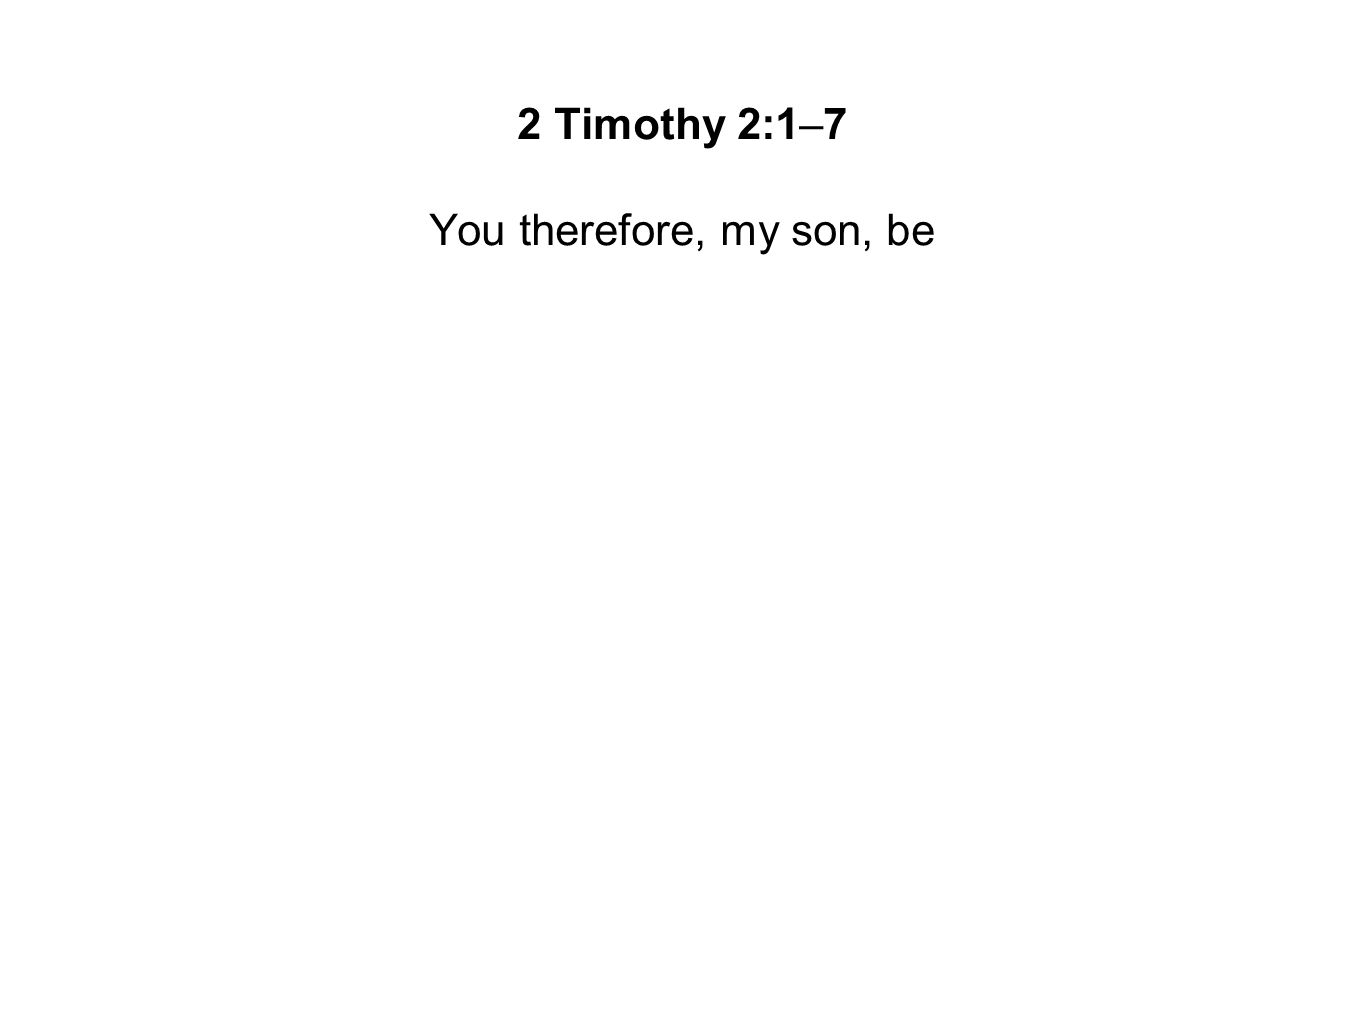 You therefore, my son, be